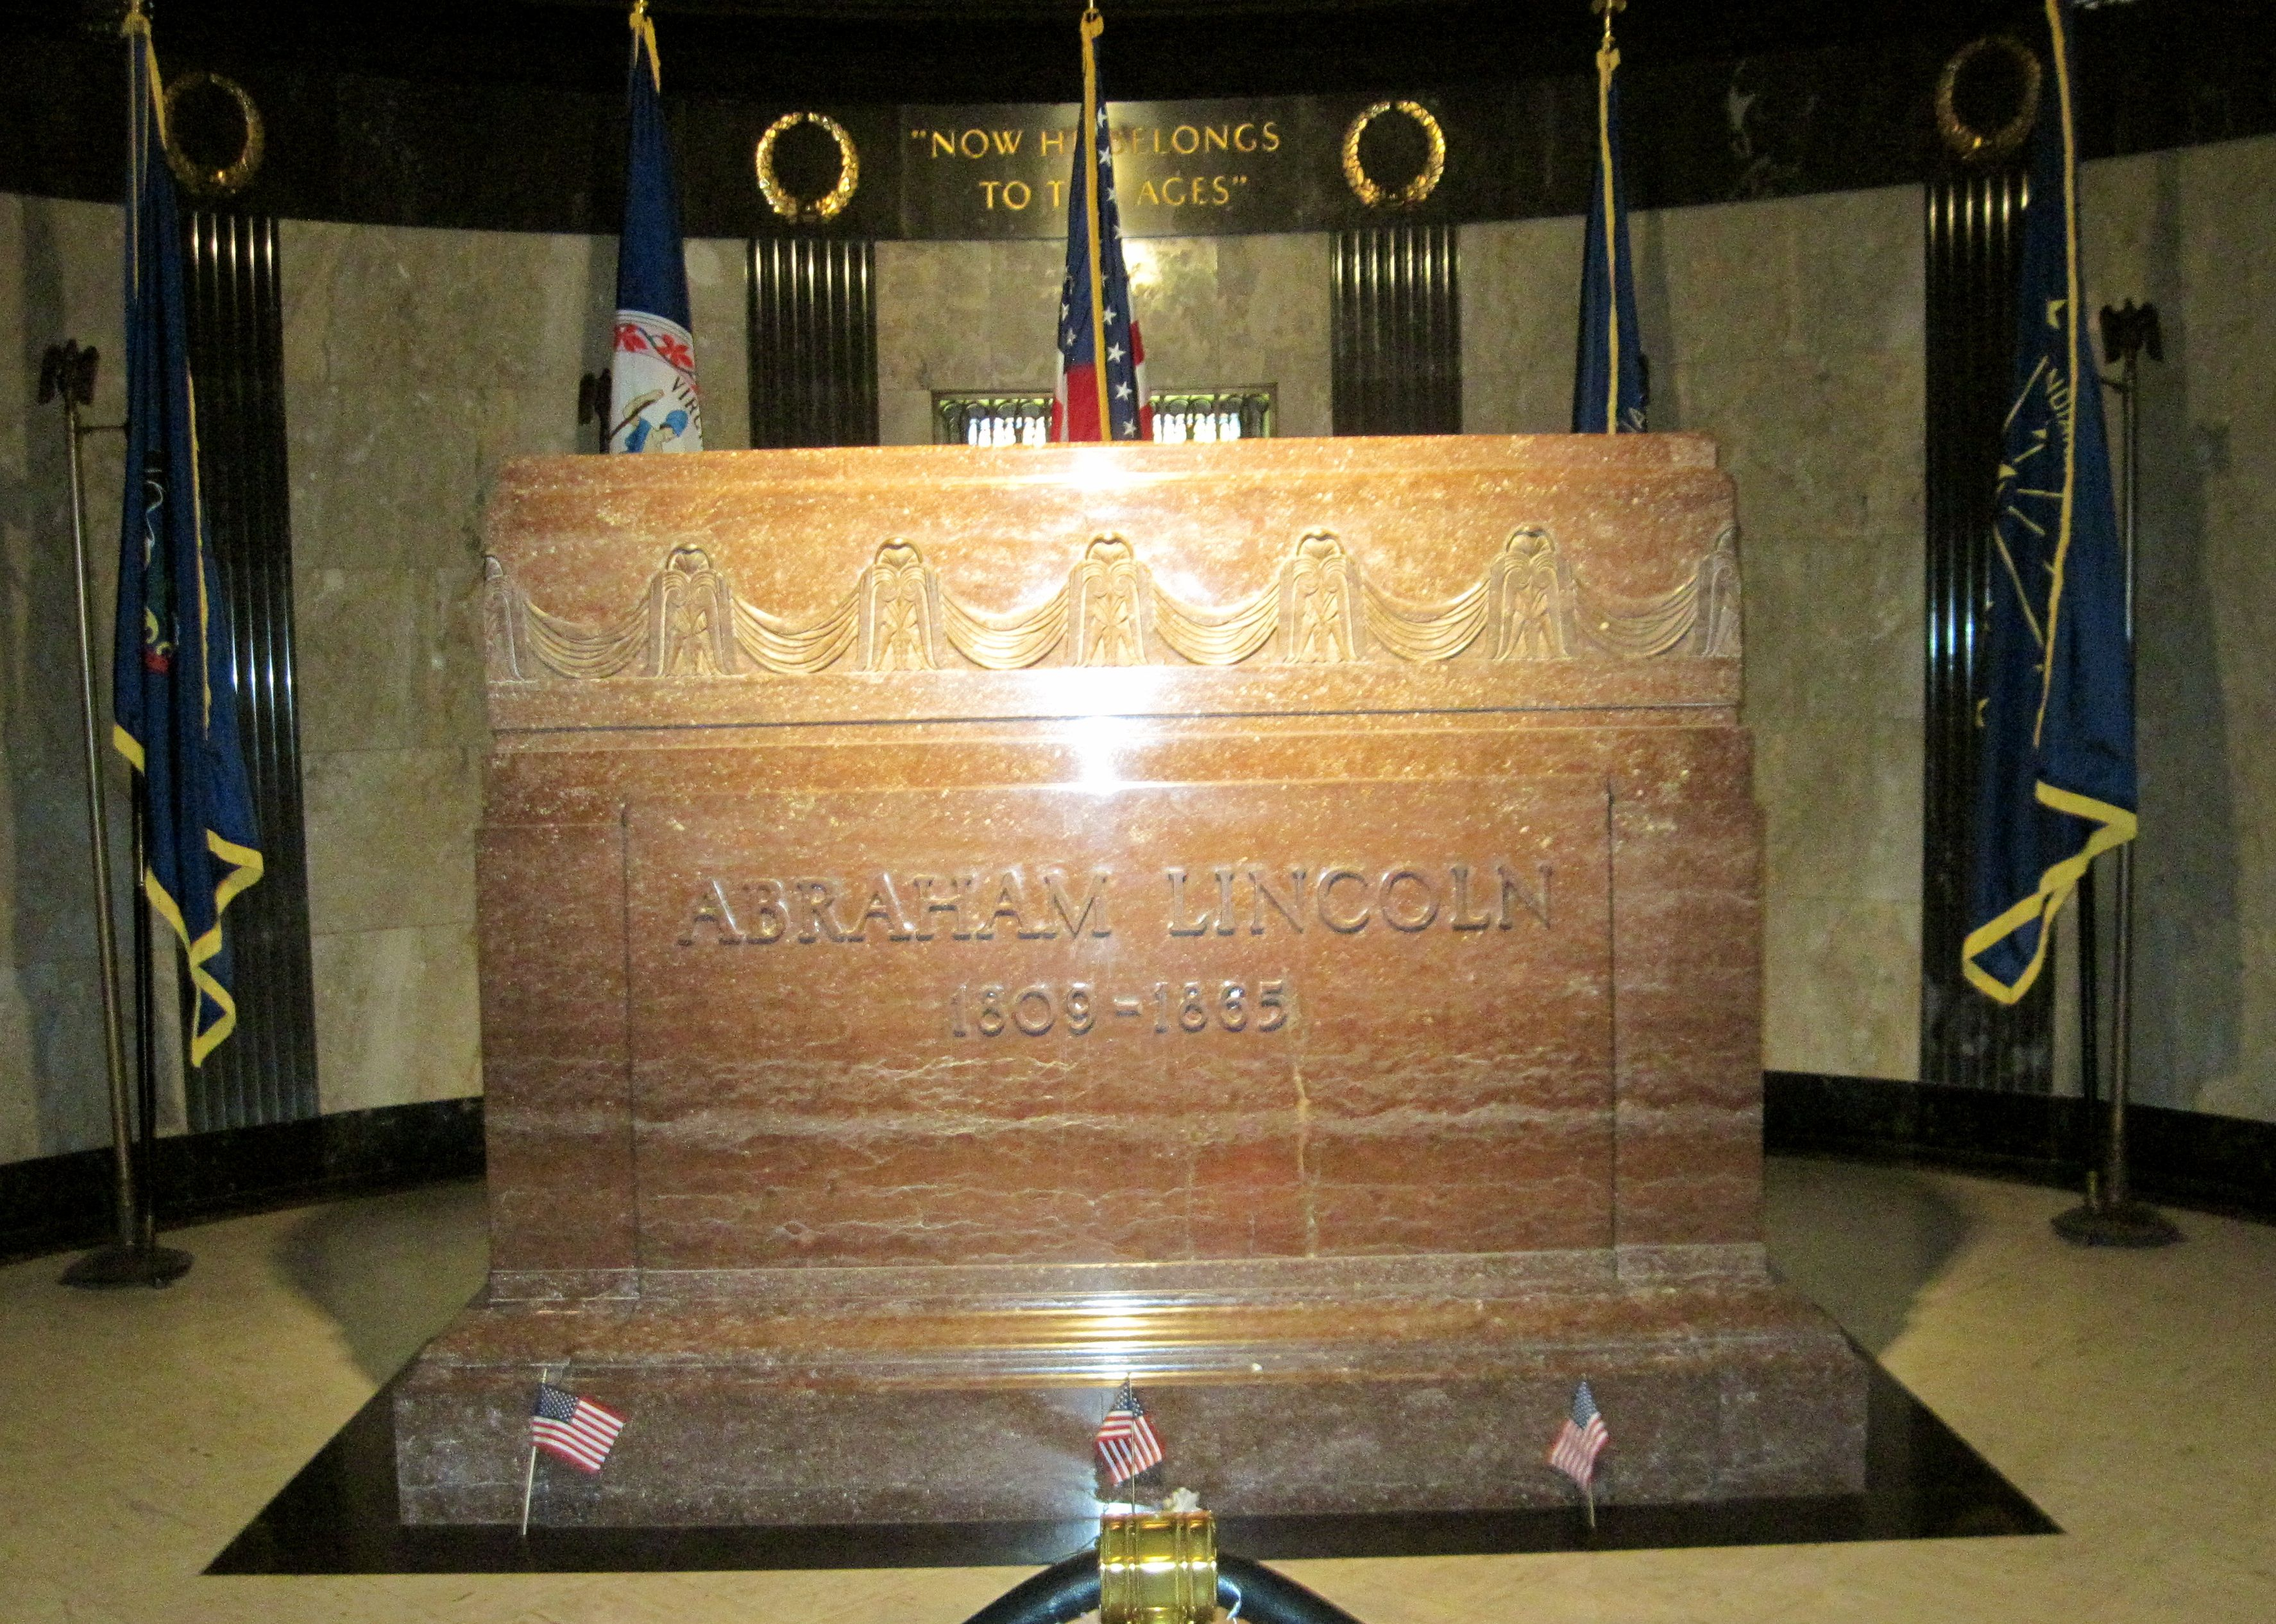 Happily Homeless visiting the tomb of Abraham Lincoln in Illinois. This was an immensely moving